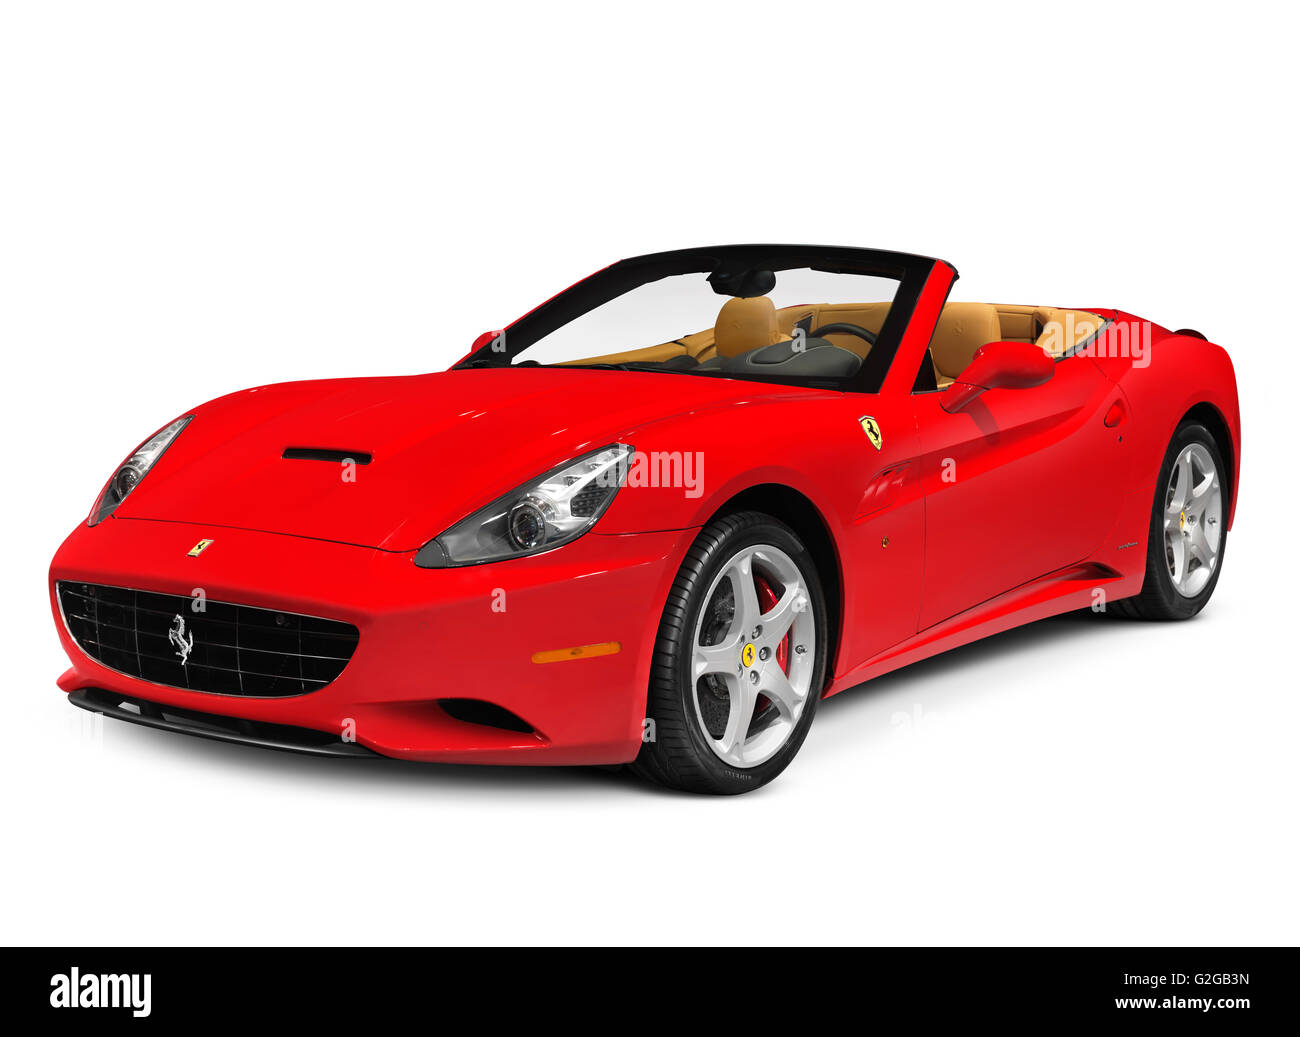 Red Ferrari California grand touring hard top convertible sports car, in production from 2008 - Stock Image